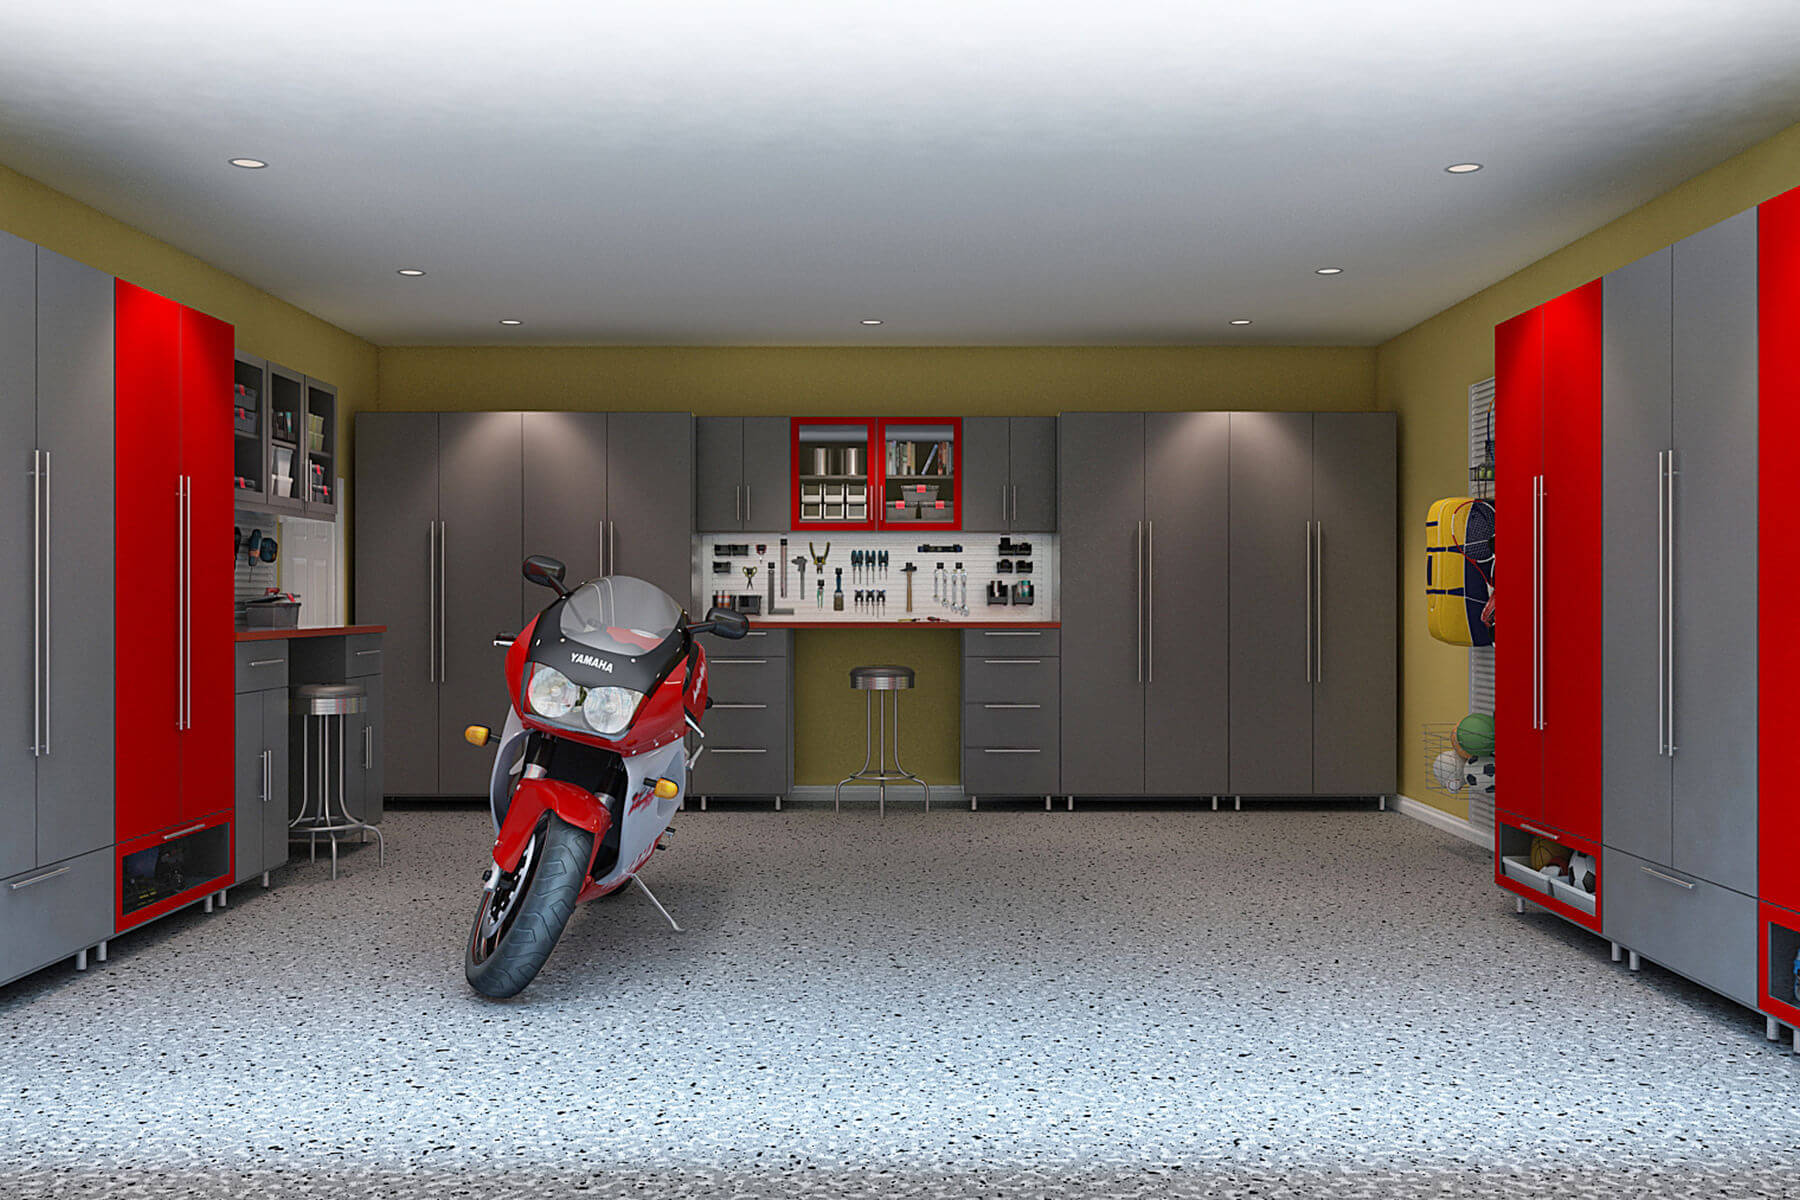 The running theme of this garage is the red and gray combination of colors in its tall melamine cabinets that line up the three corners of the garage. A sparkle of yellow on the walls only add up to the playfulness of colors exercised in the room.